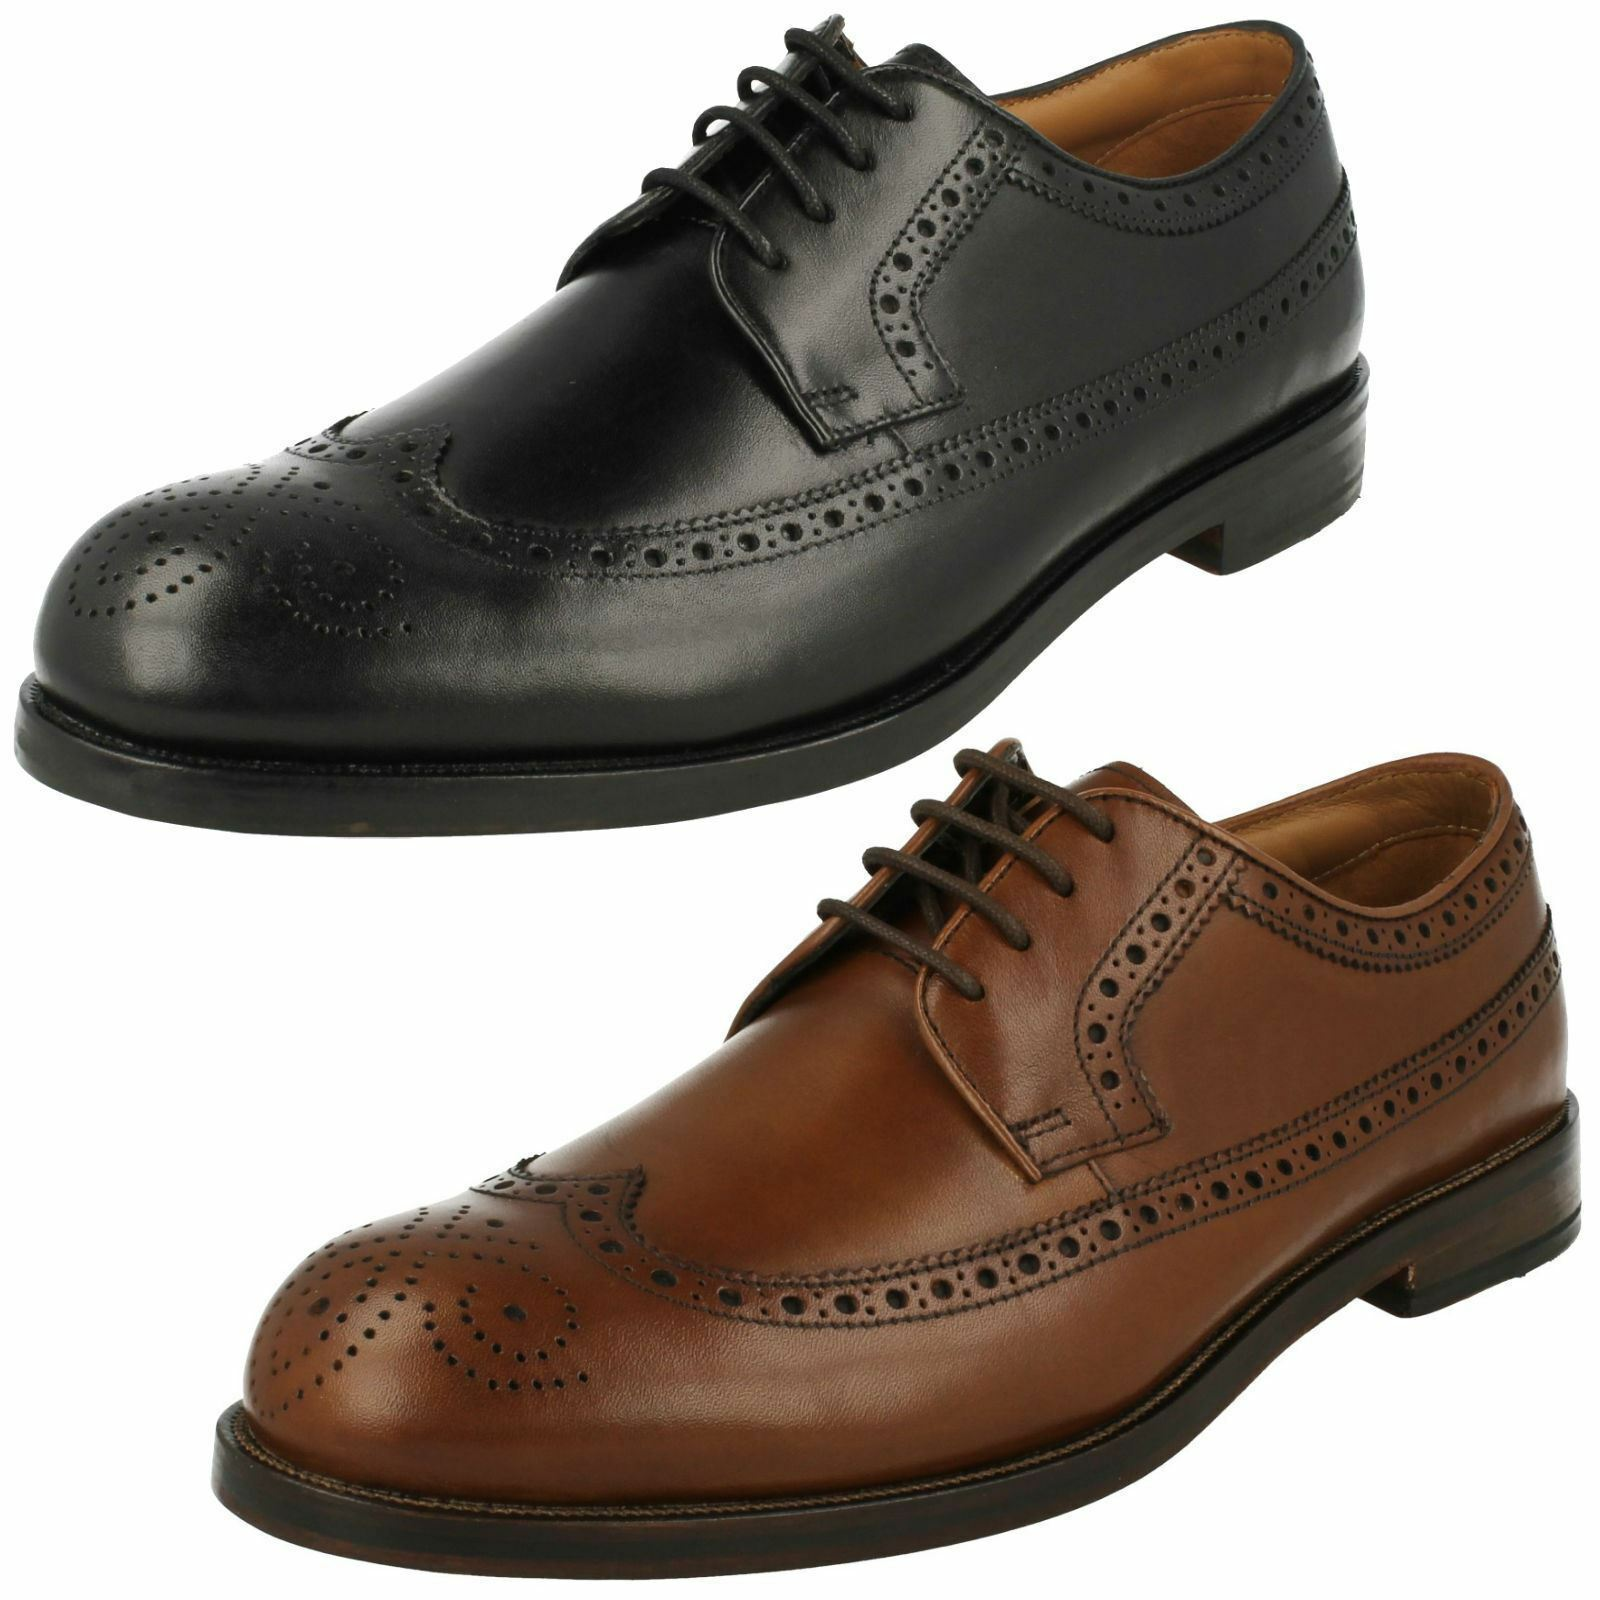 Solde  Clarks Coling Limite Hommes Chaussures Richelieu Cuir